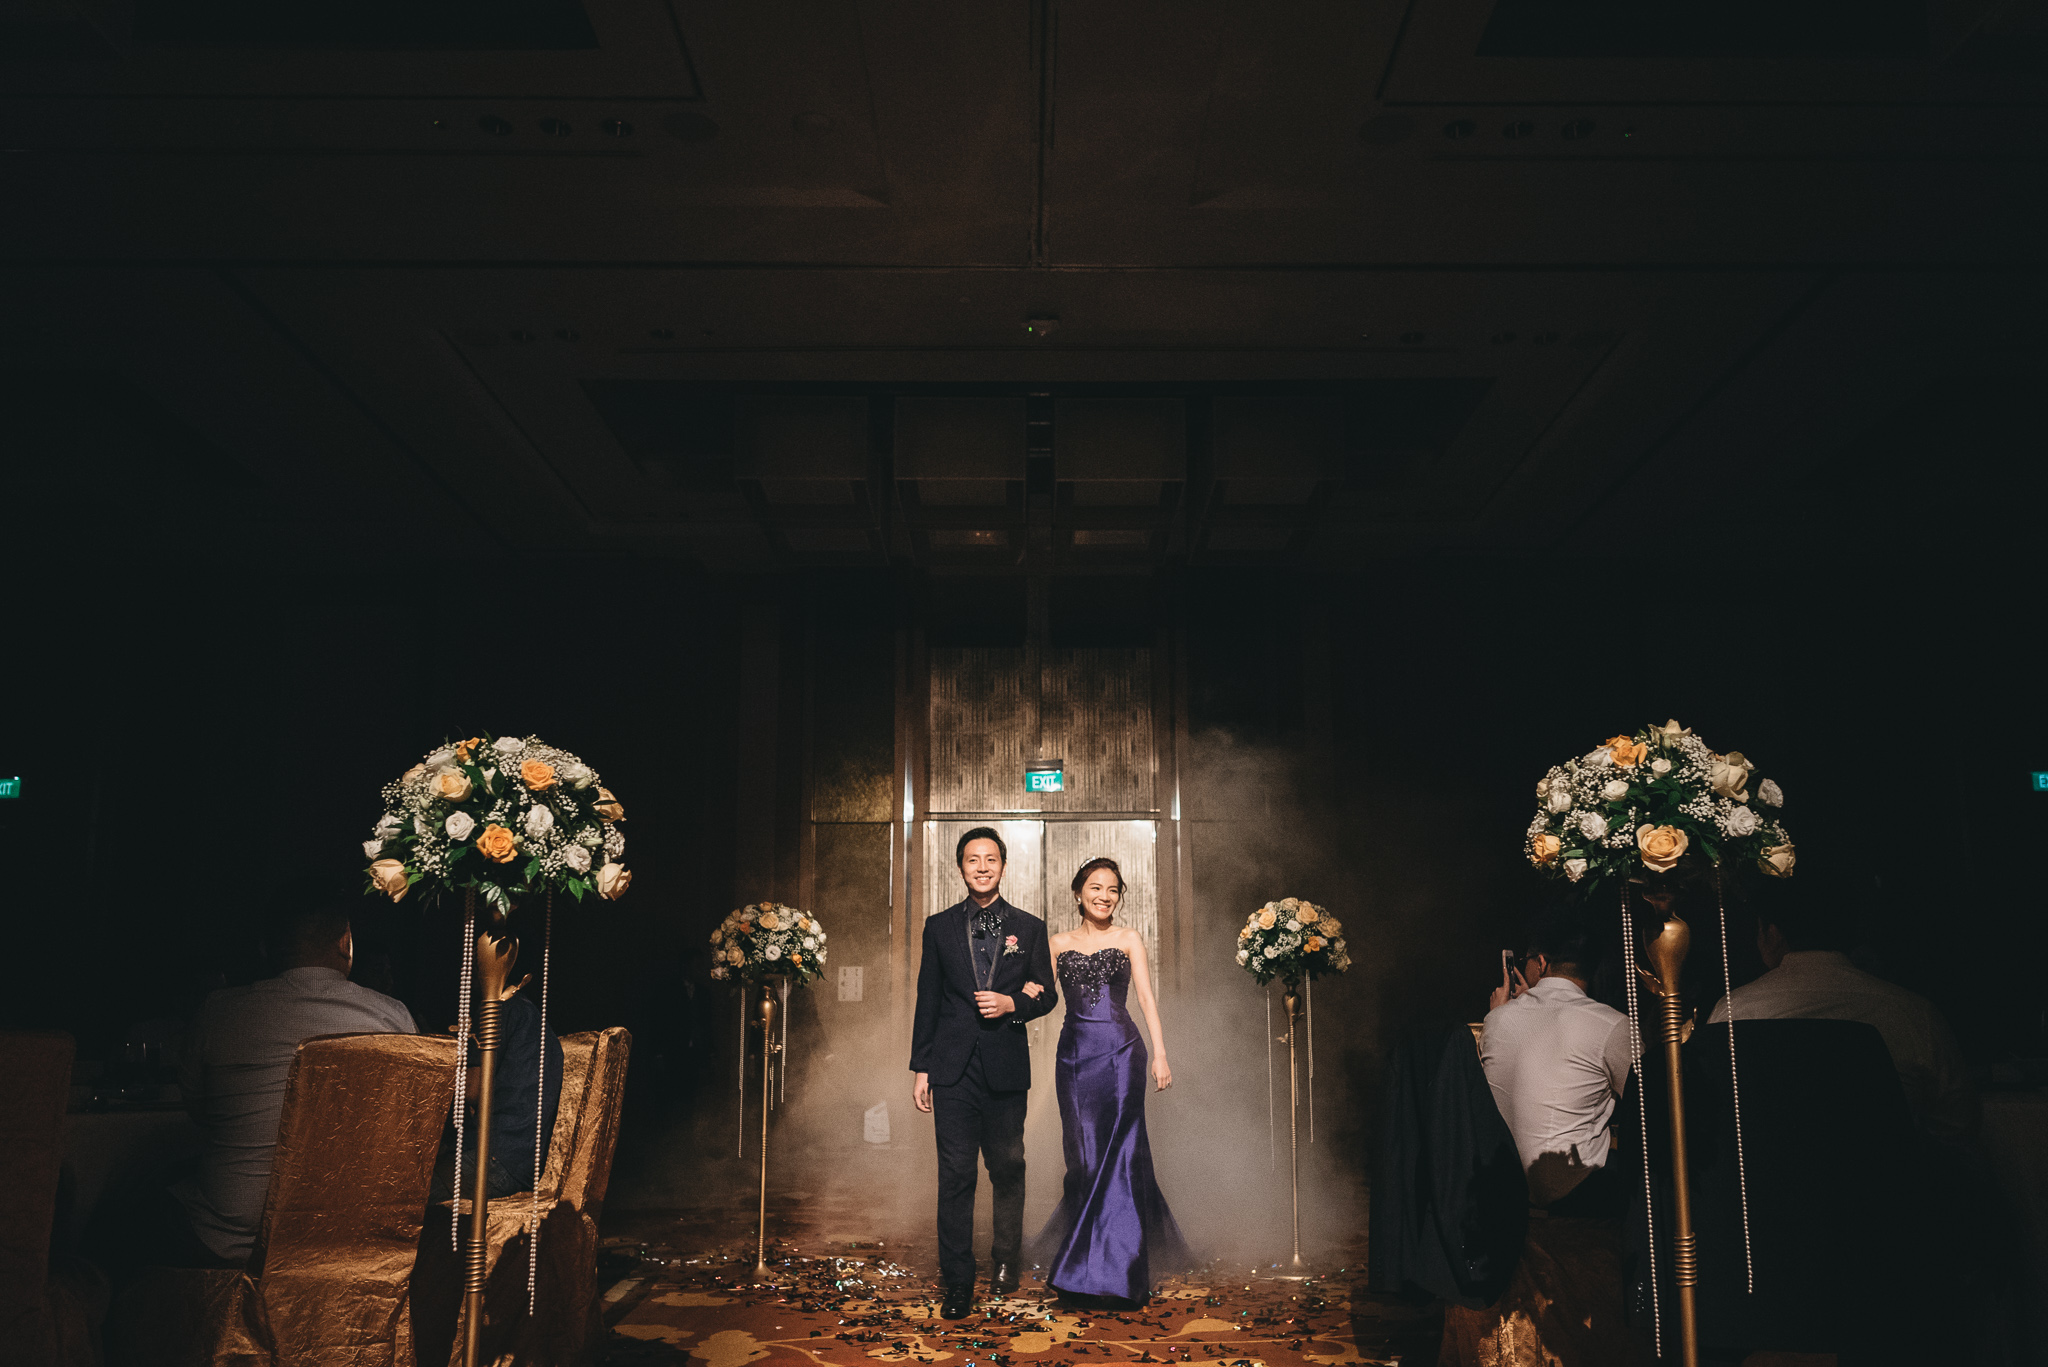 Fiona & Terence Wedding Day Highlights (resized for sharing) - 211.jpg